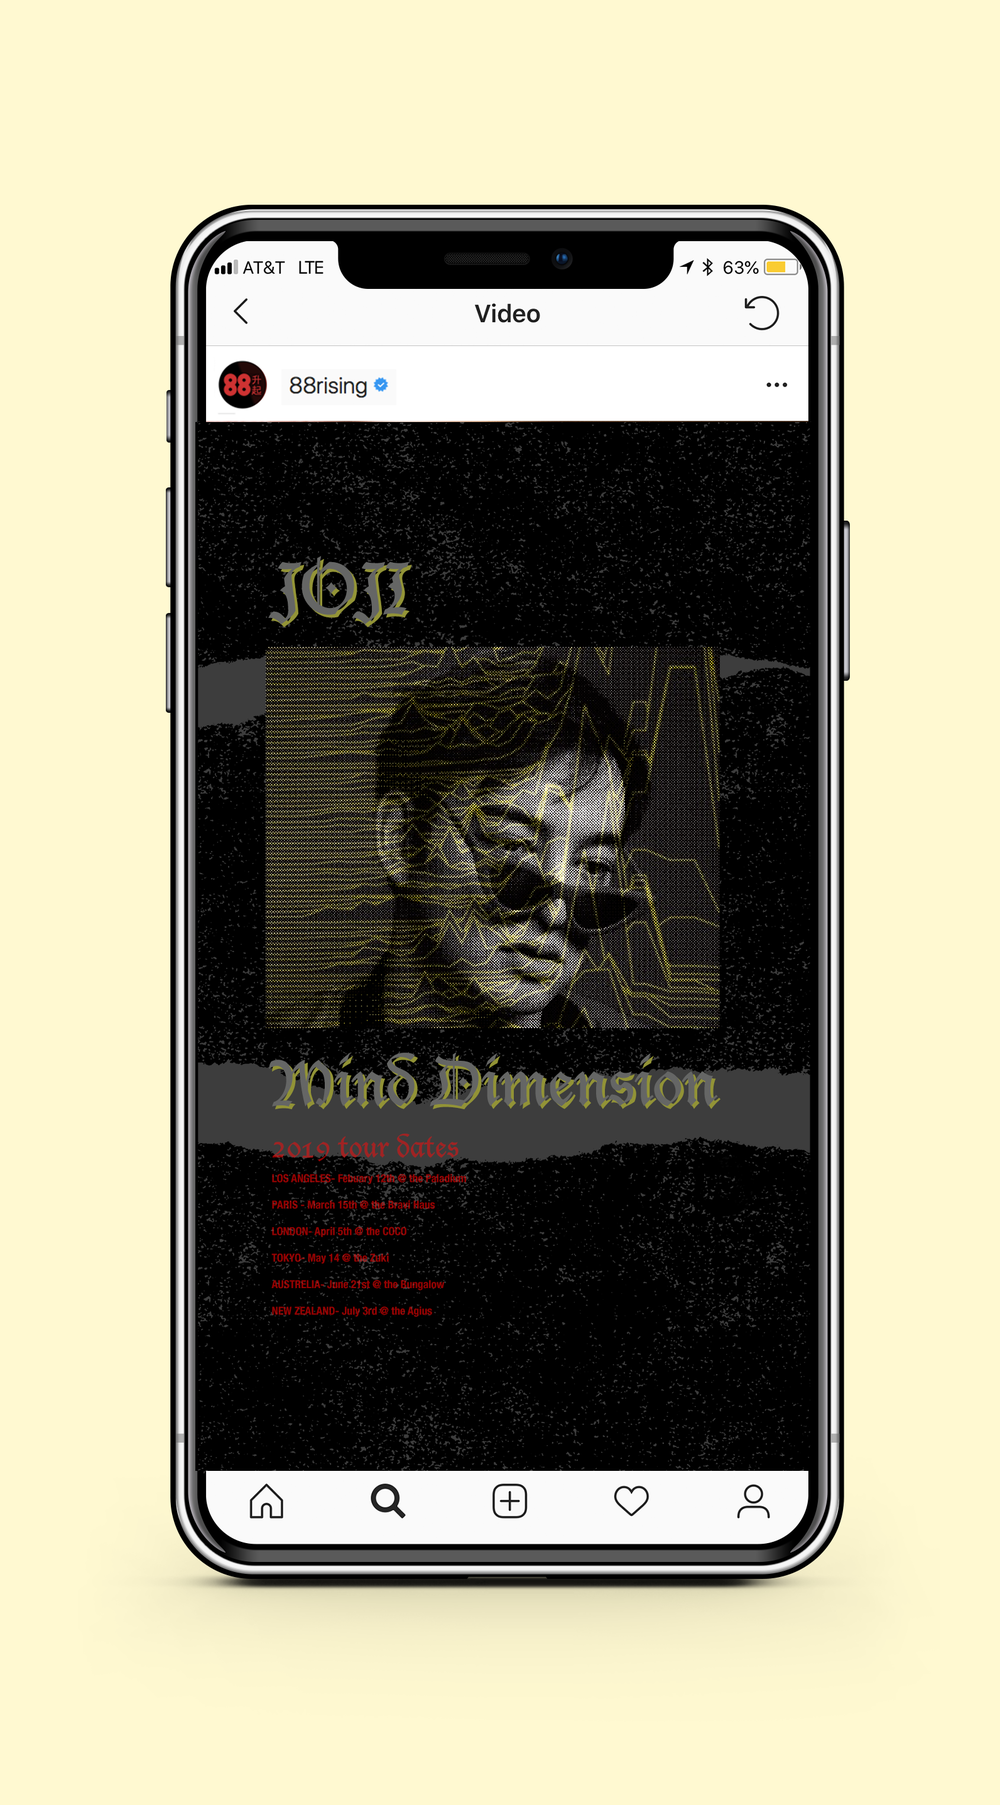 Joji_iphone.png